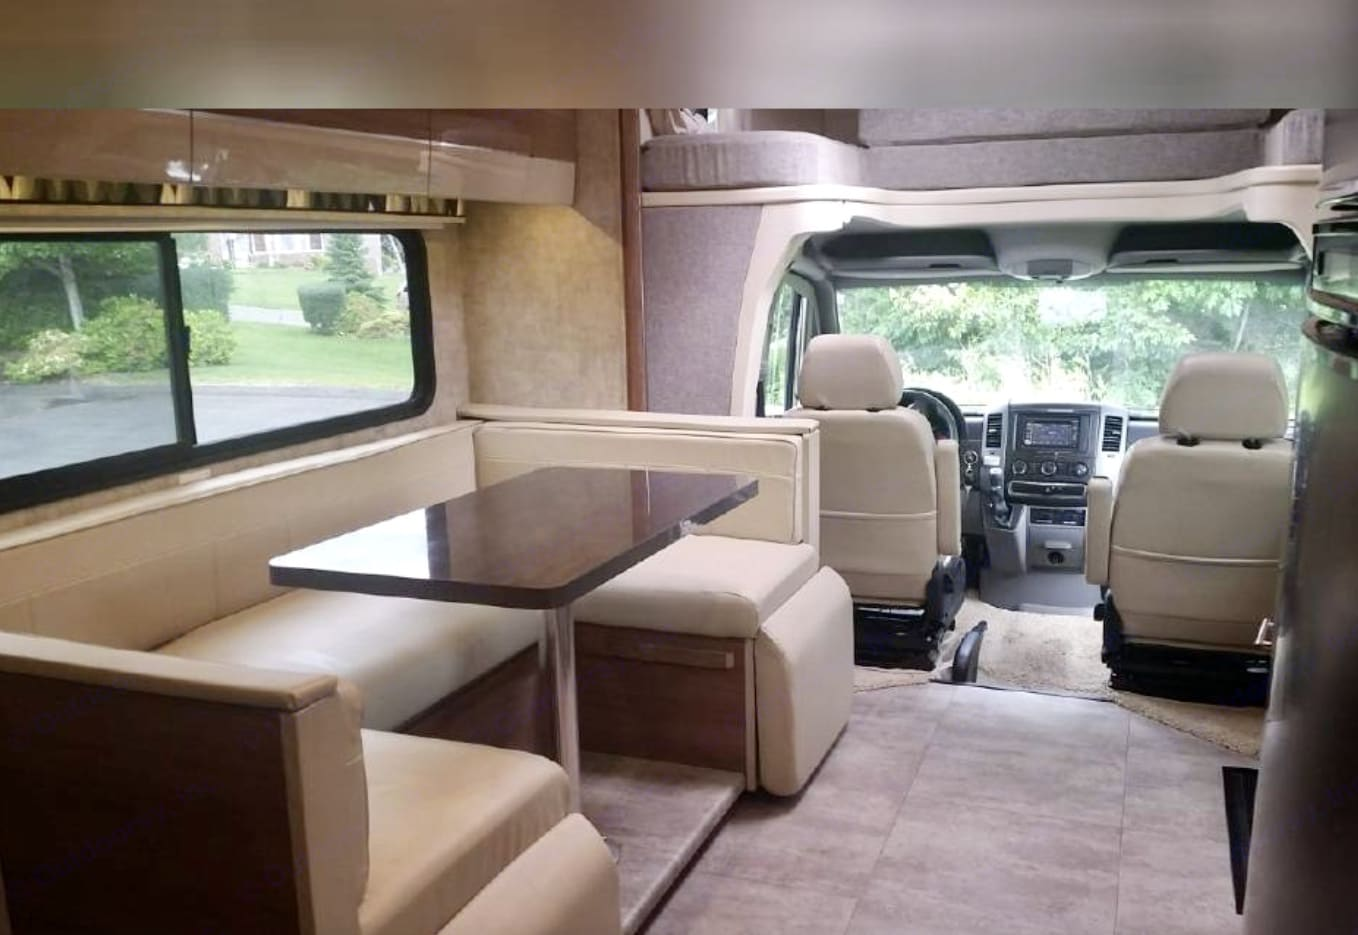 U-shaped dinette seats 5, captain chairs swivel as well for additional seating. Winnebago Navion 2015